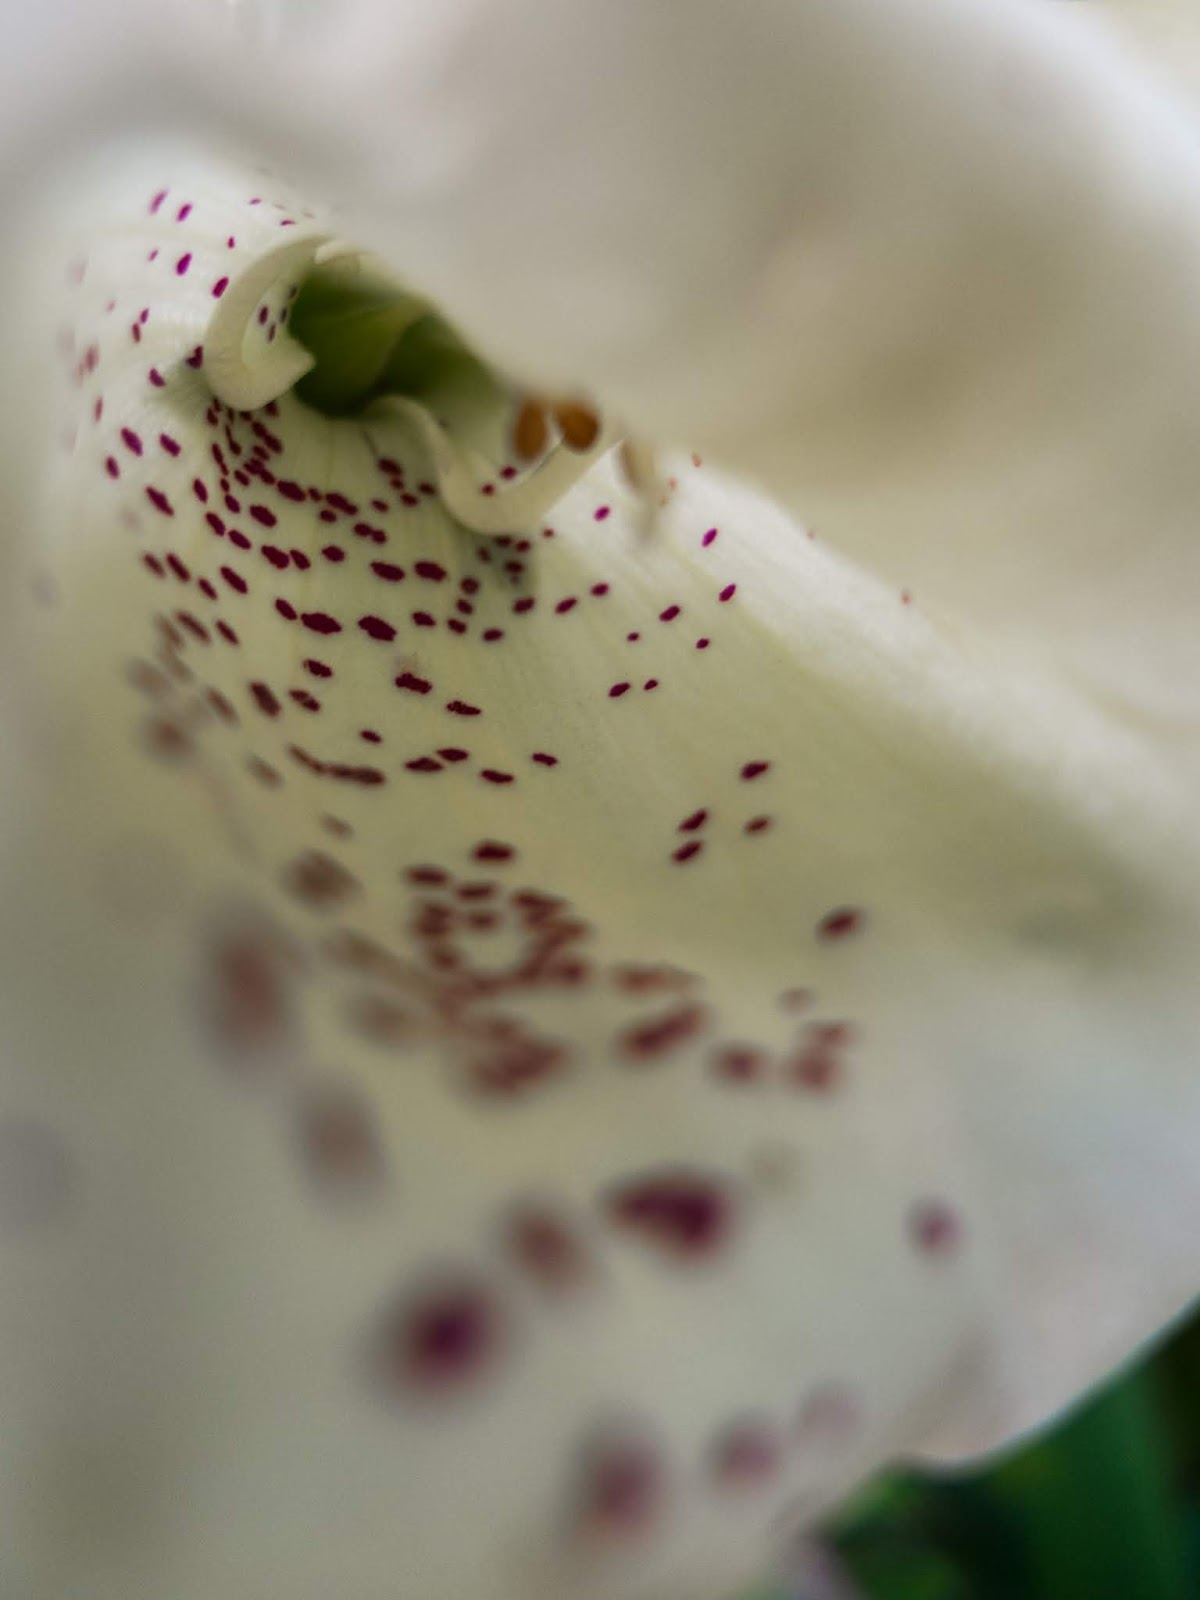 A macro of the inside of a white Foxglove flower with pink speckles on the petal.